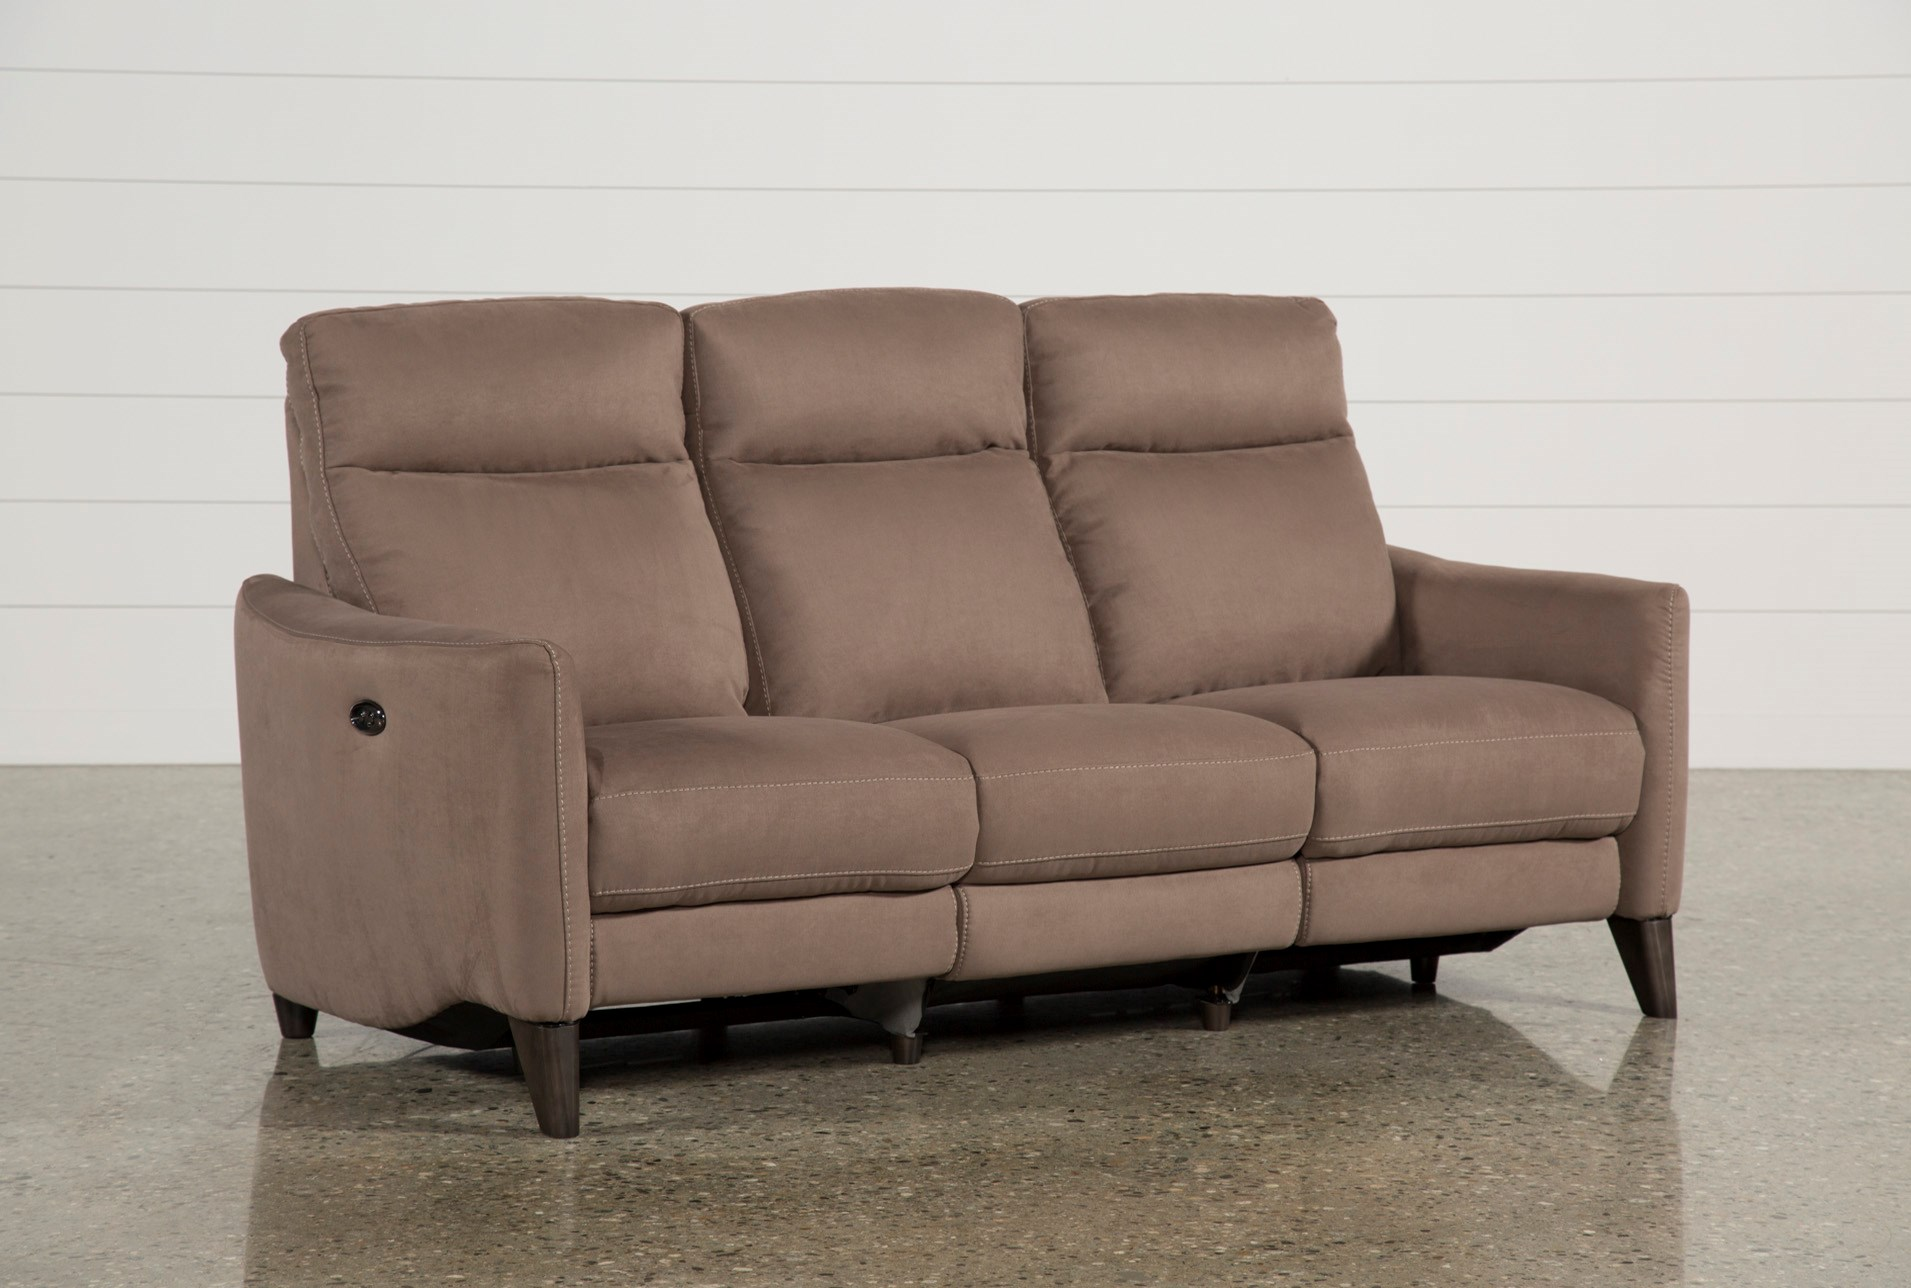 Melina cocoa power reclining sofa w usb qty 1 has been successfully added to your cart